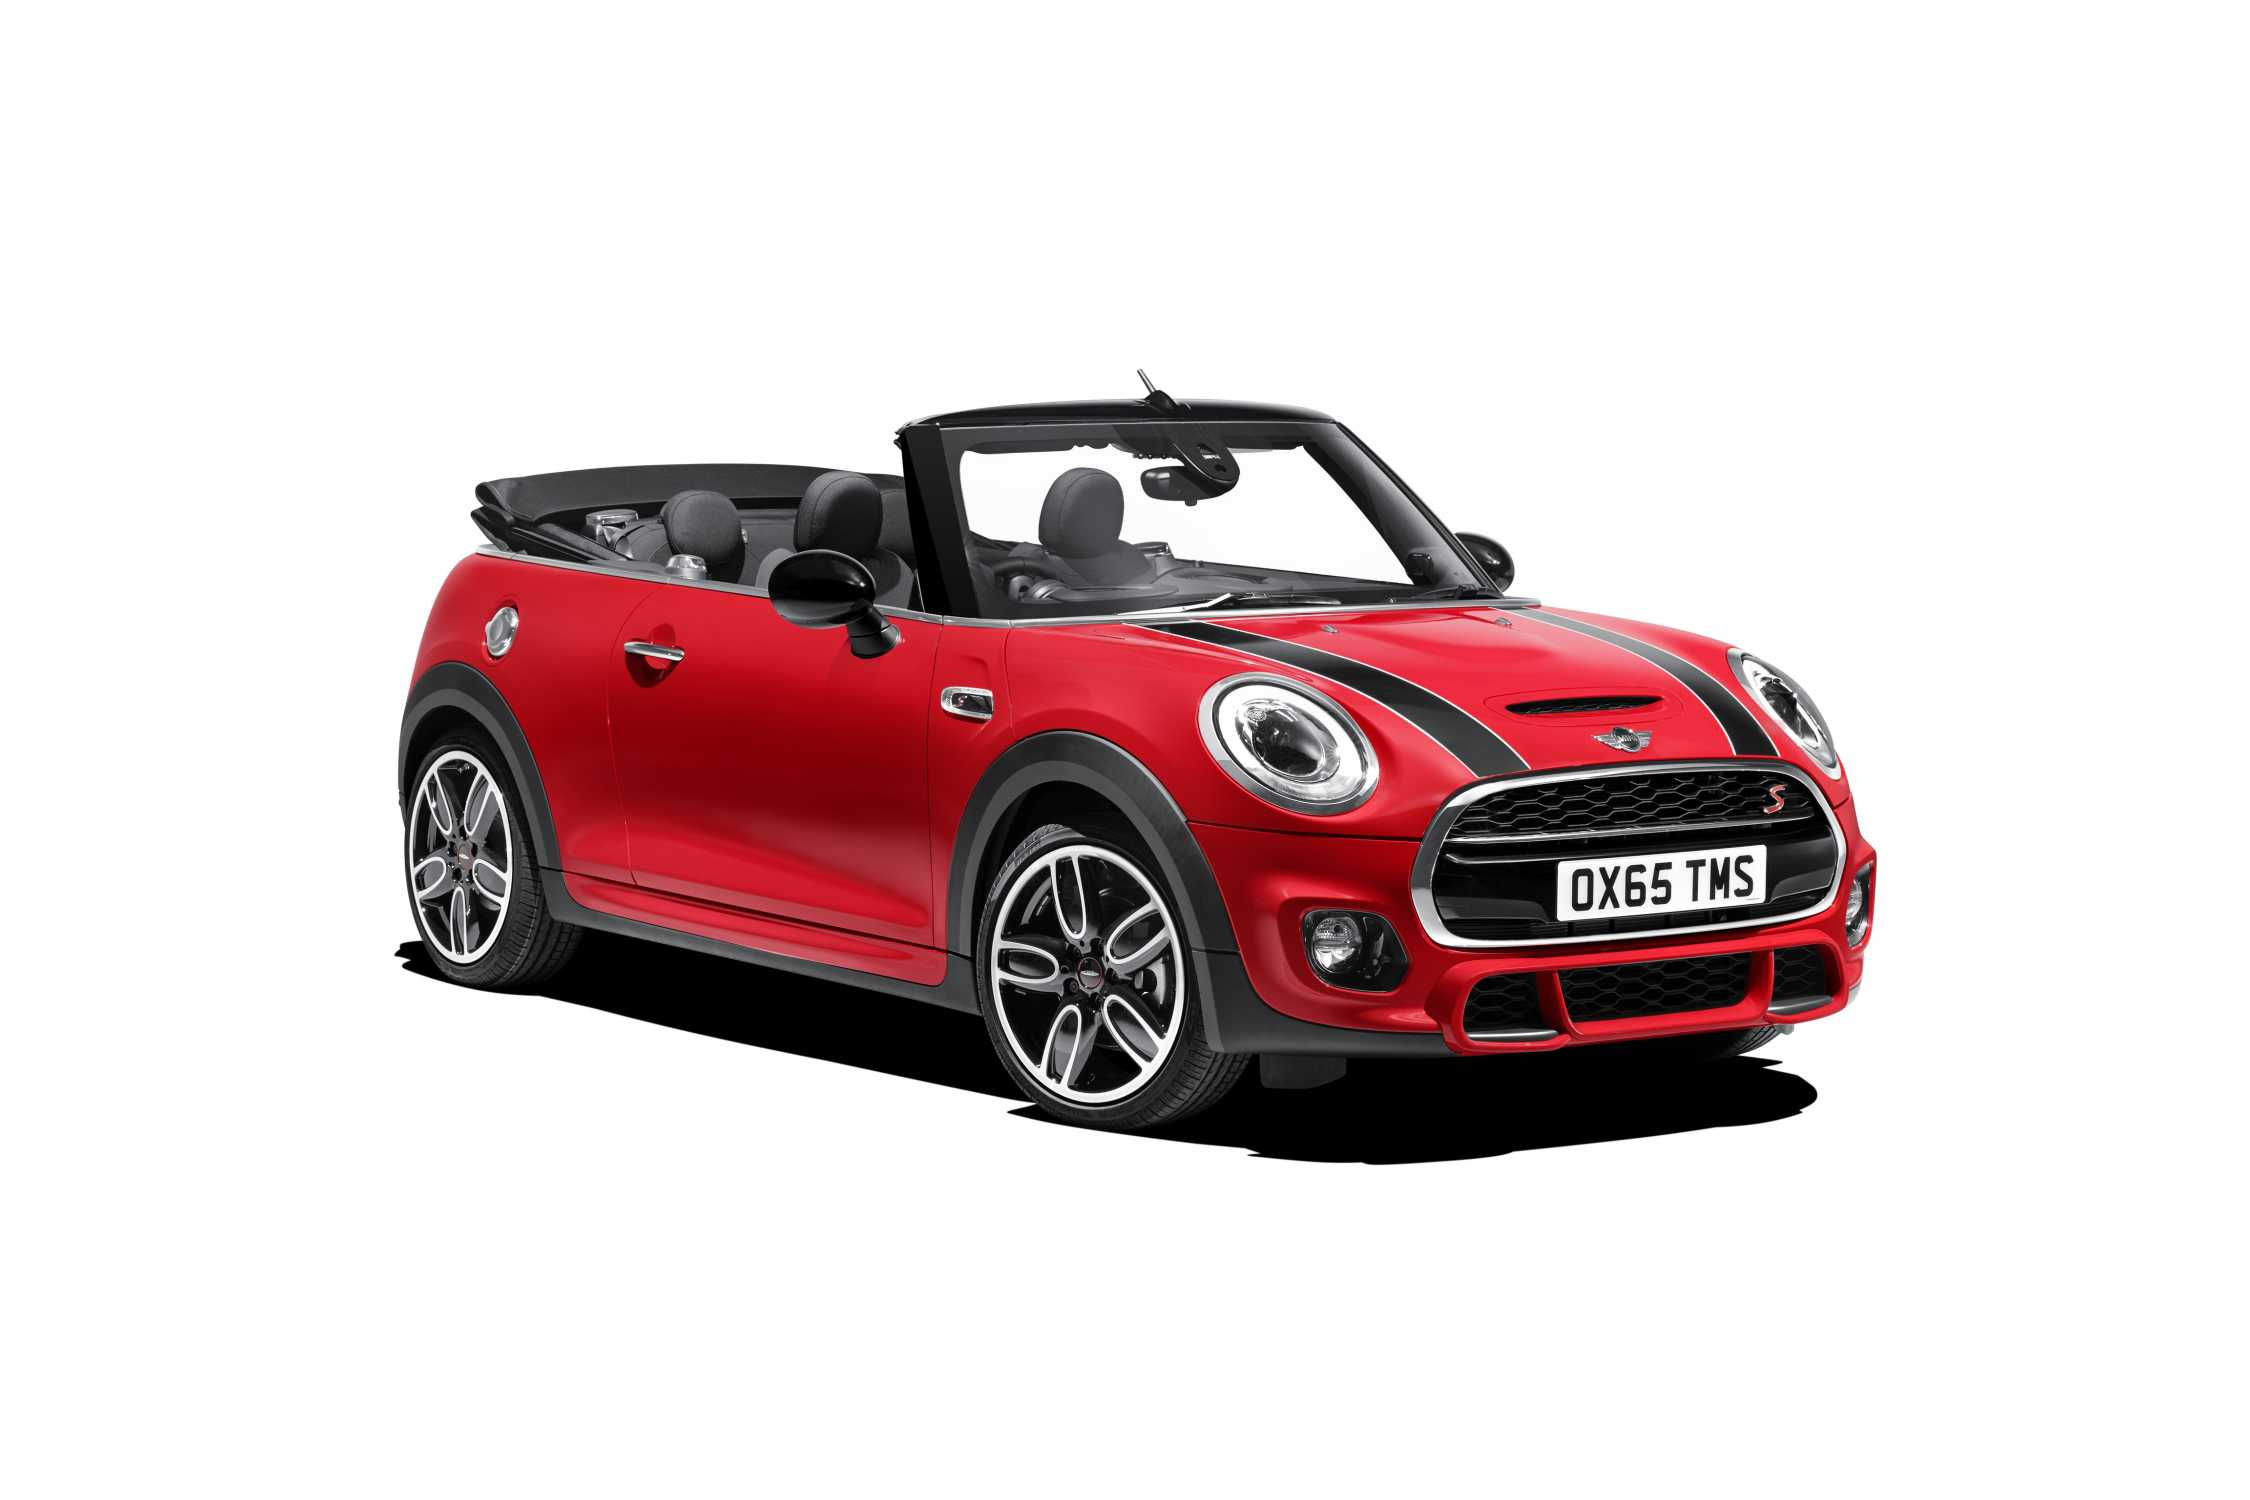 mini cooper s cabrio mit john cooper works exterieur paket. Black Bedroom Furniture Sets. Home Design Ideas